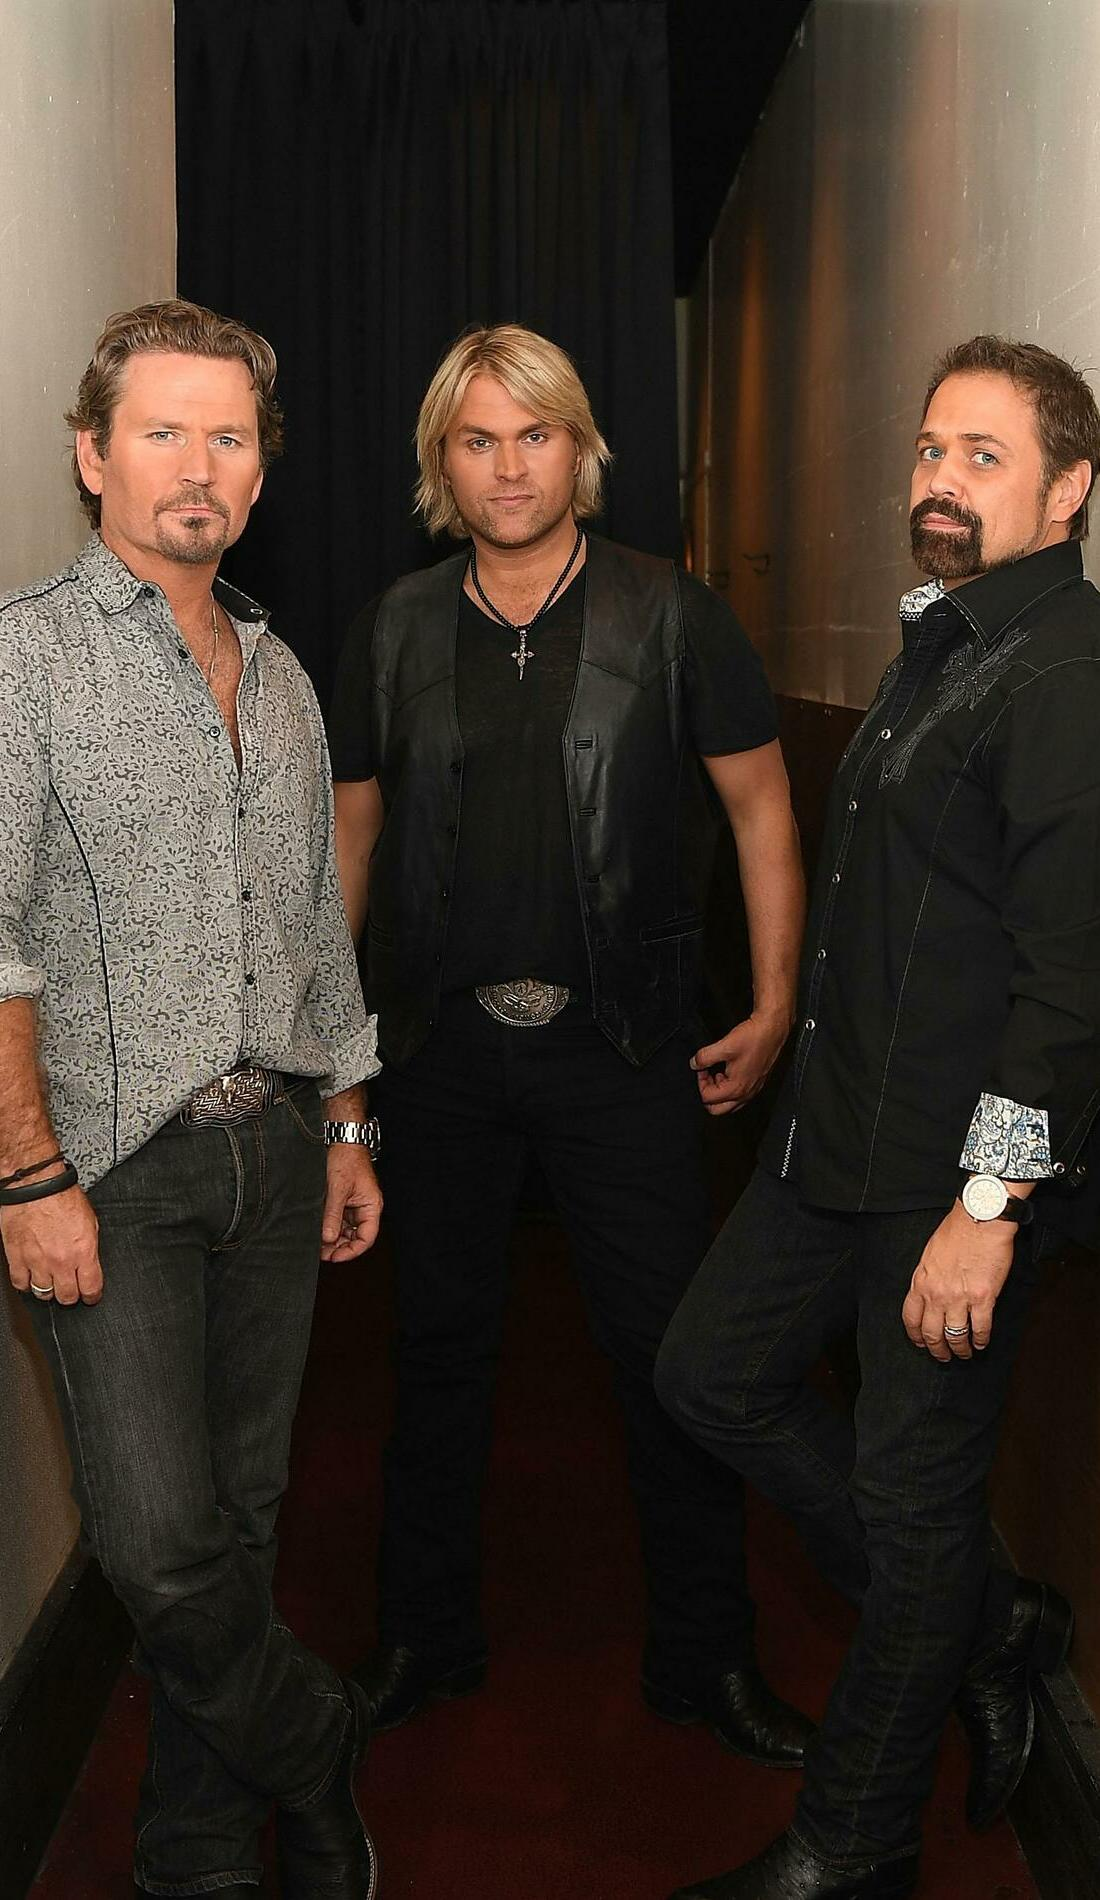 A The Texas Tenors live event